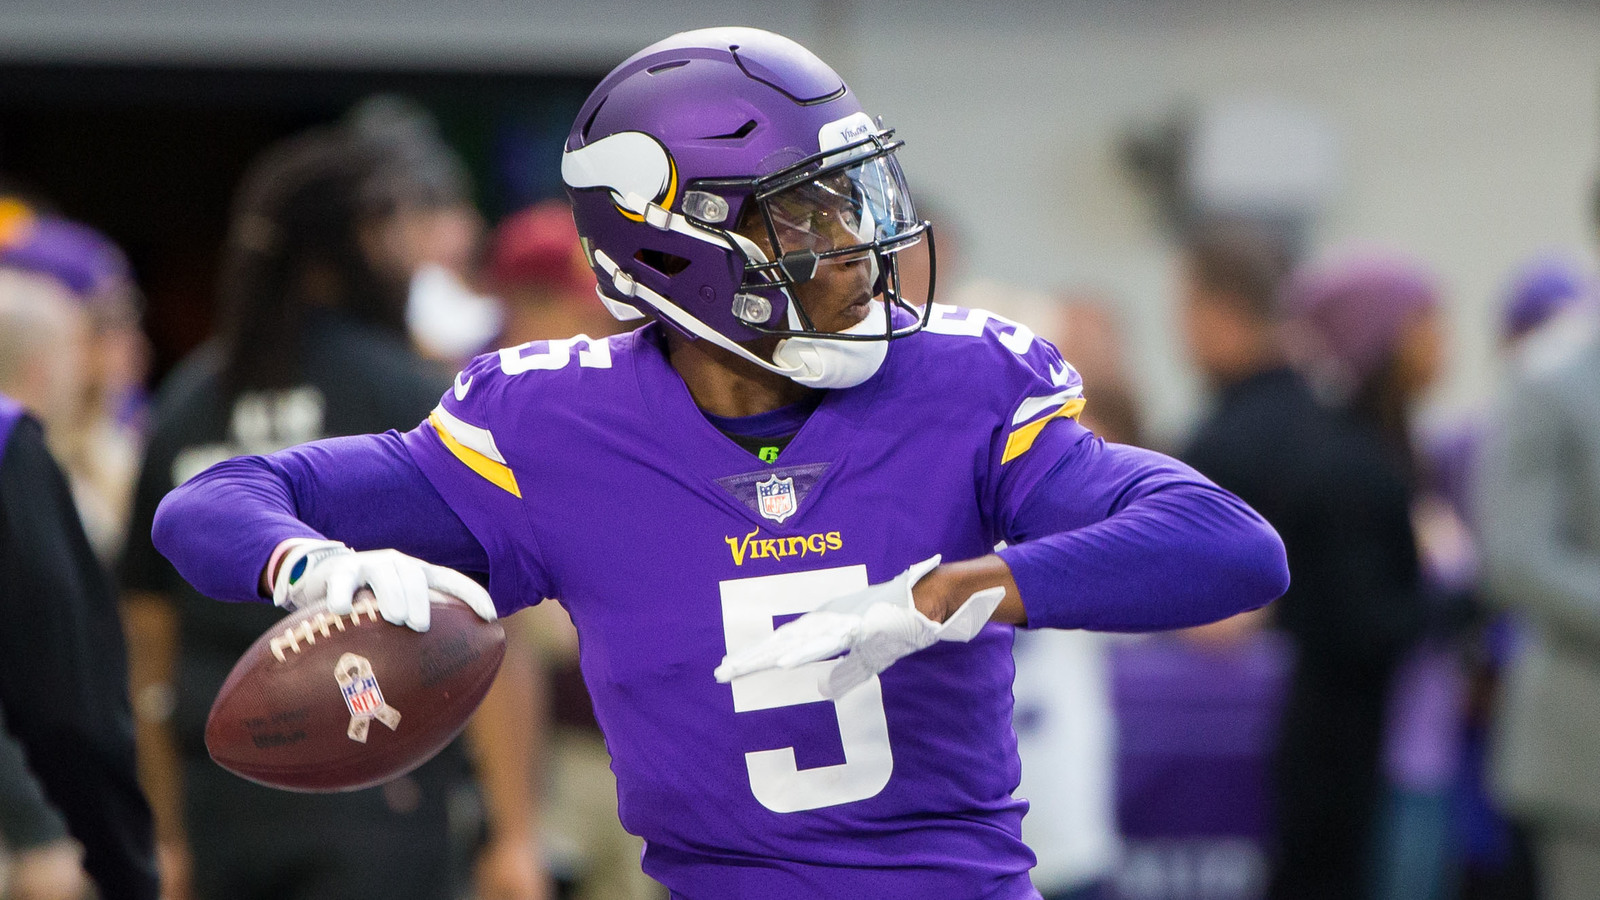 New York Jets working on a deal with Teddy Bridgewater